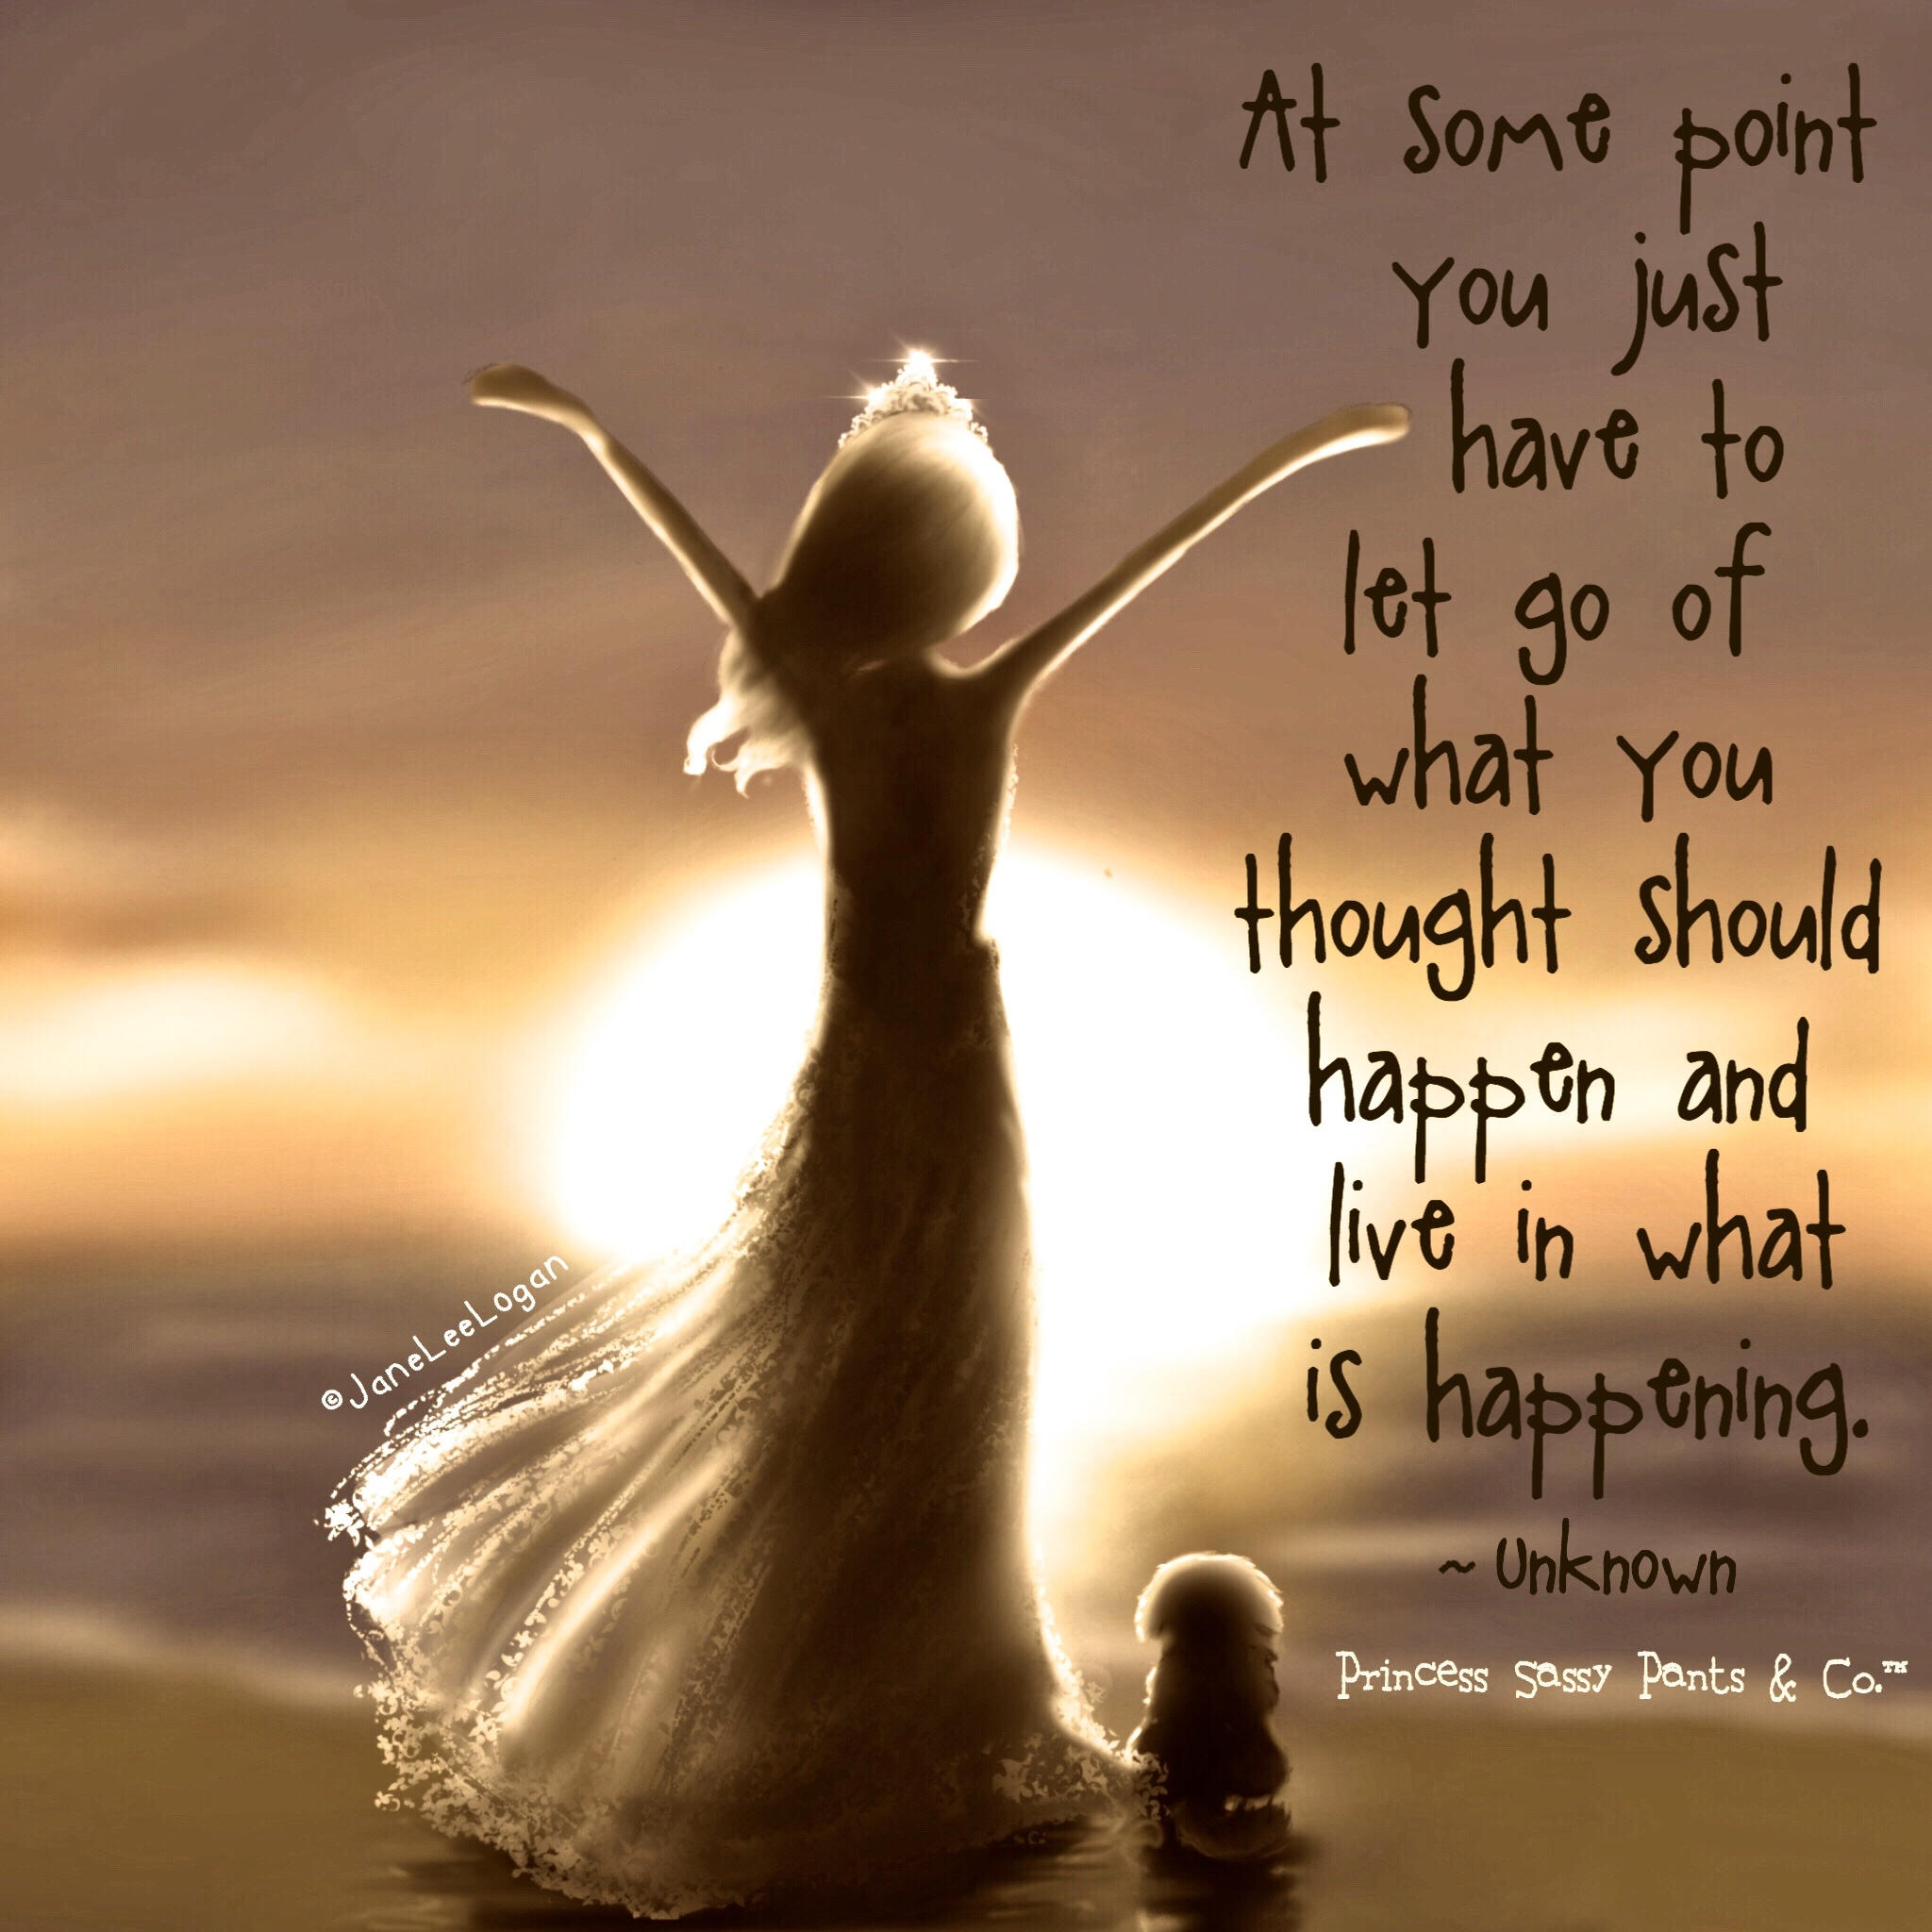 Powerful Little Quote Sad Quotes T: Princess Sassy Pants & Co.™